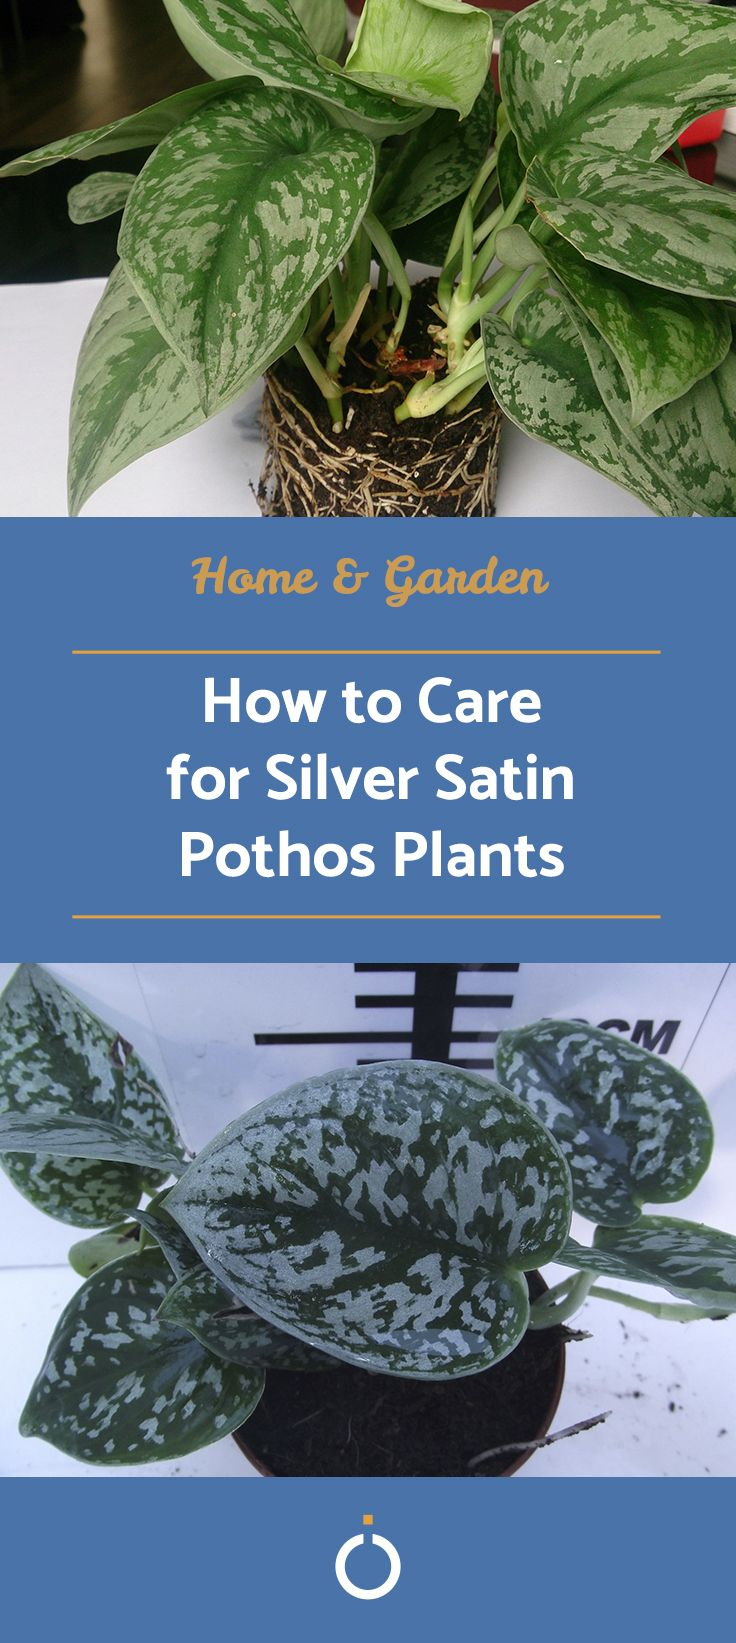 How to Care for Silver Satin Pothos